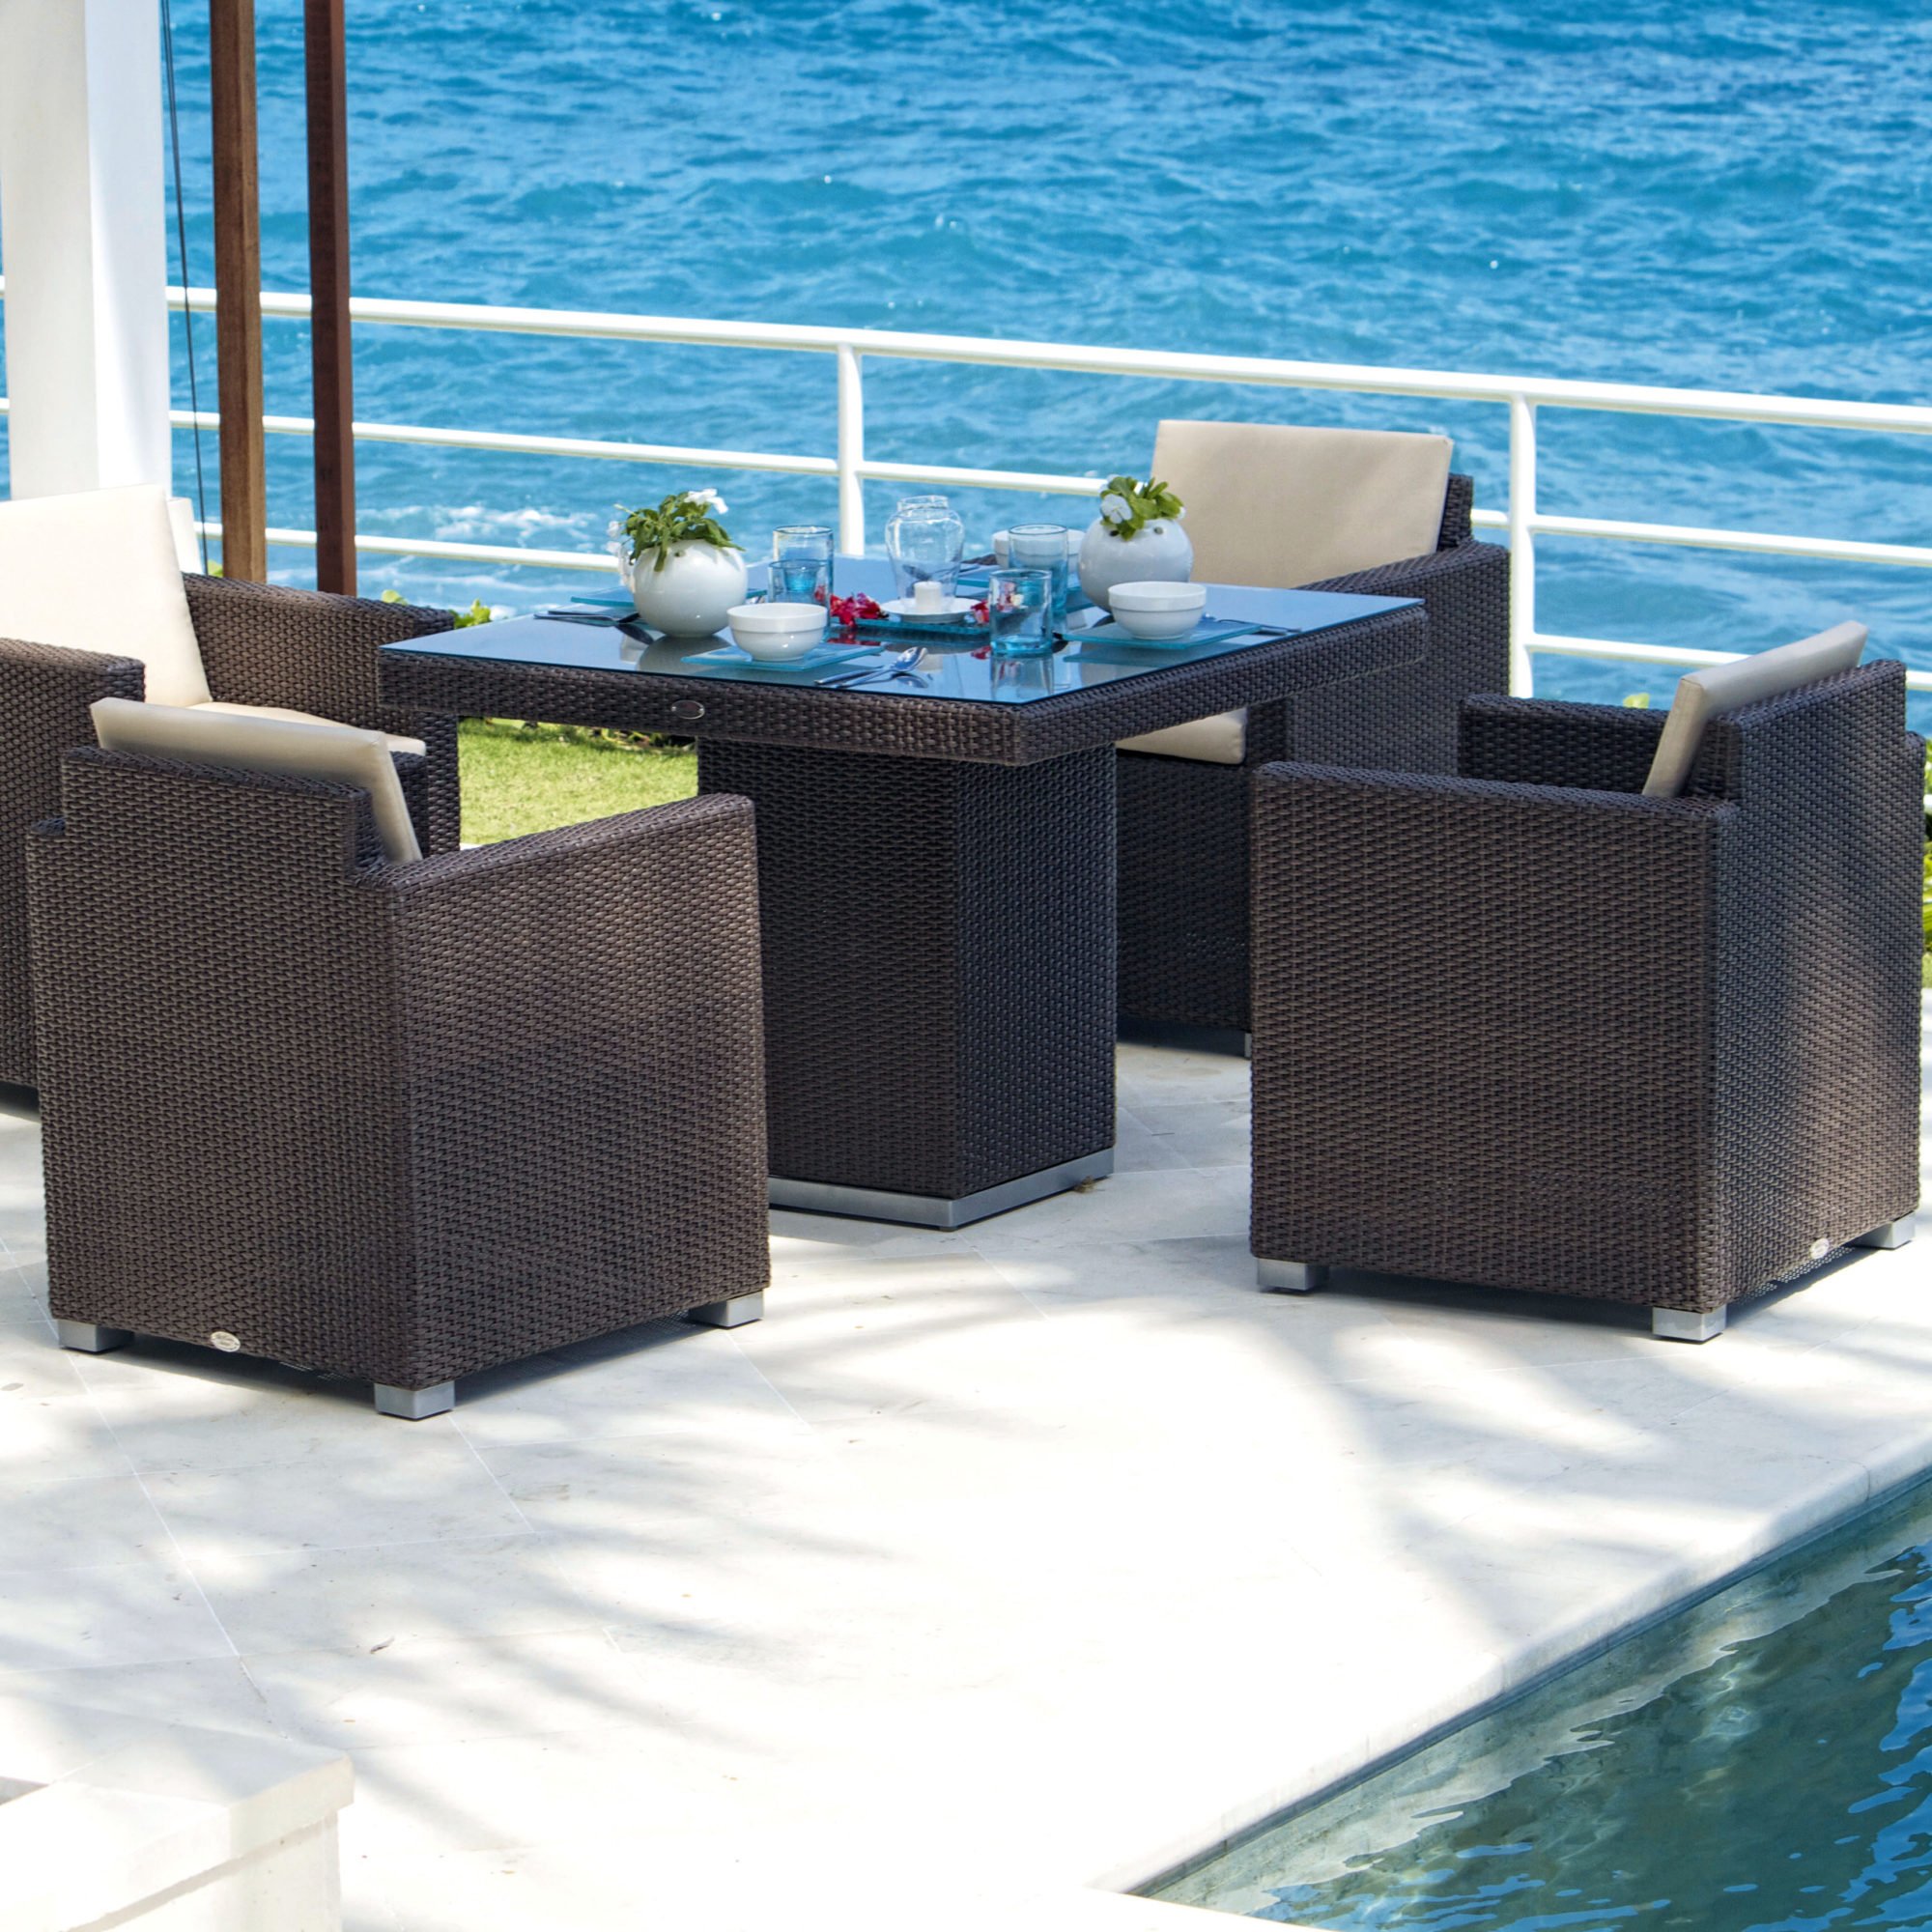 Skyline Pacific Dining Collection Couture Outdoor